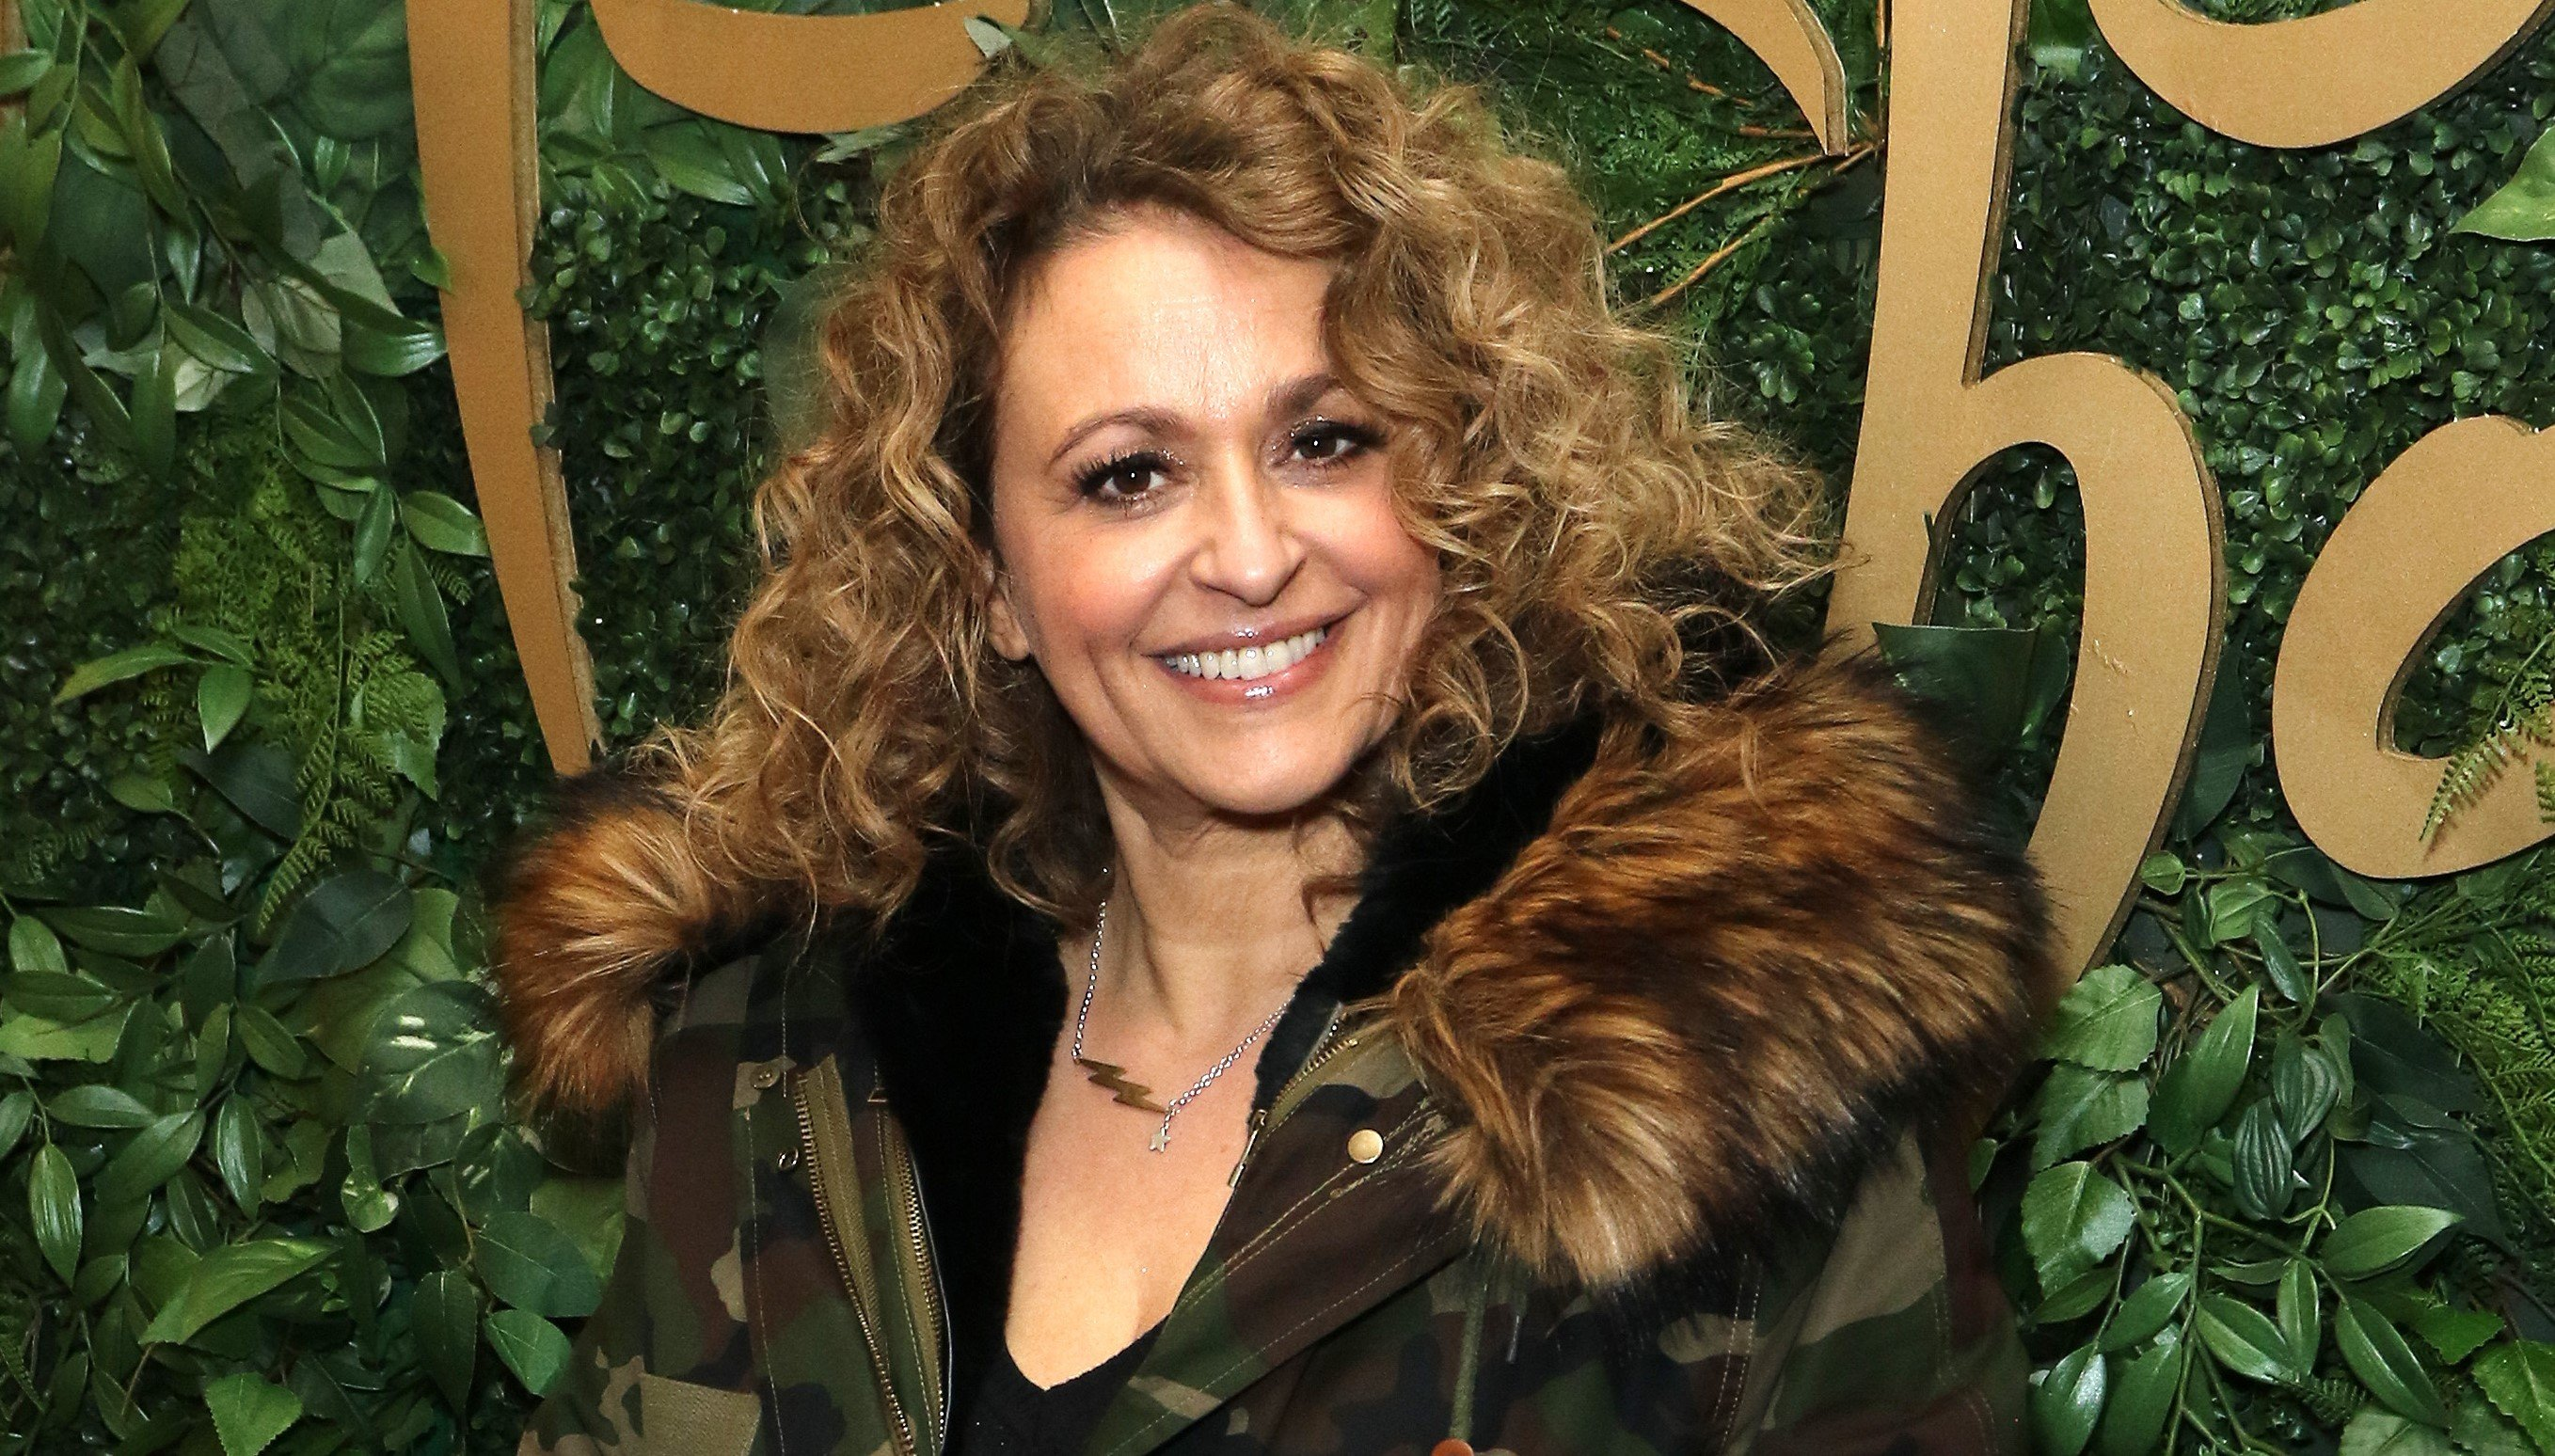 Nadia Sawalha shares sweet wedding photo with husband Mark